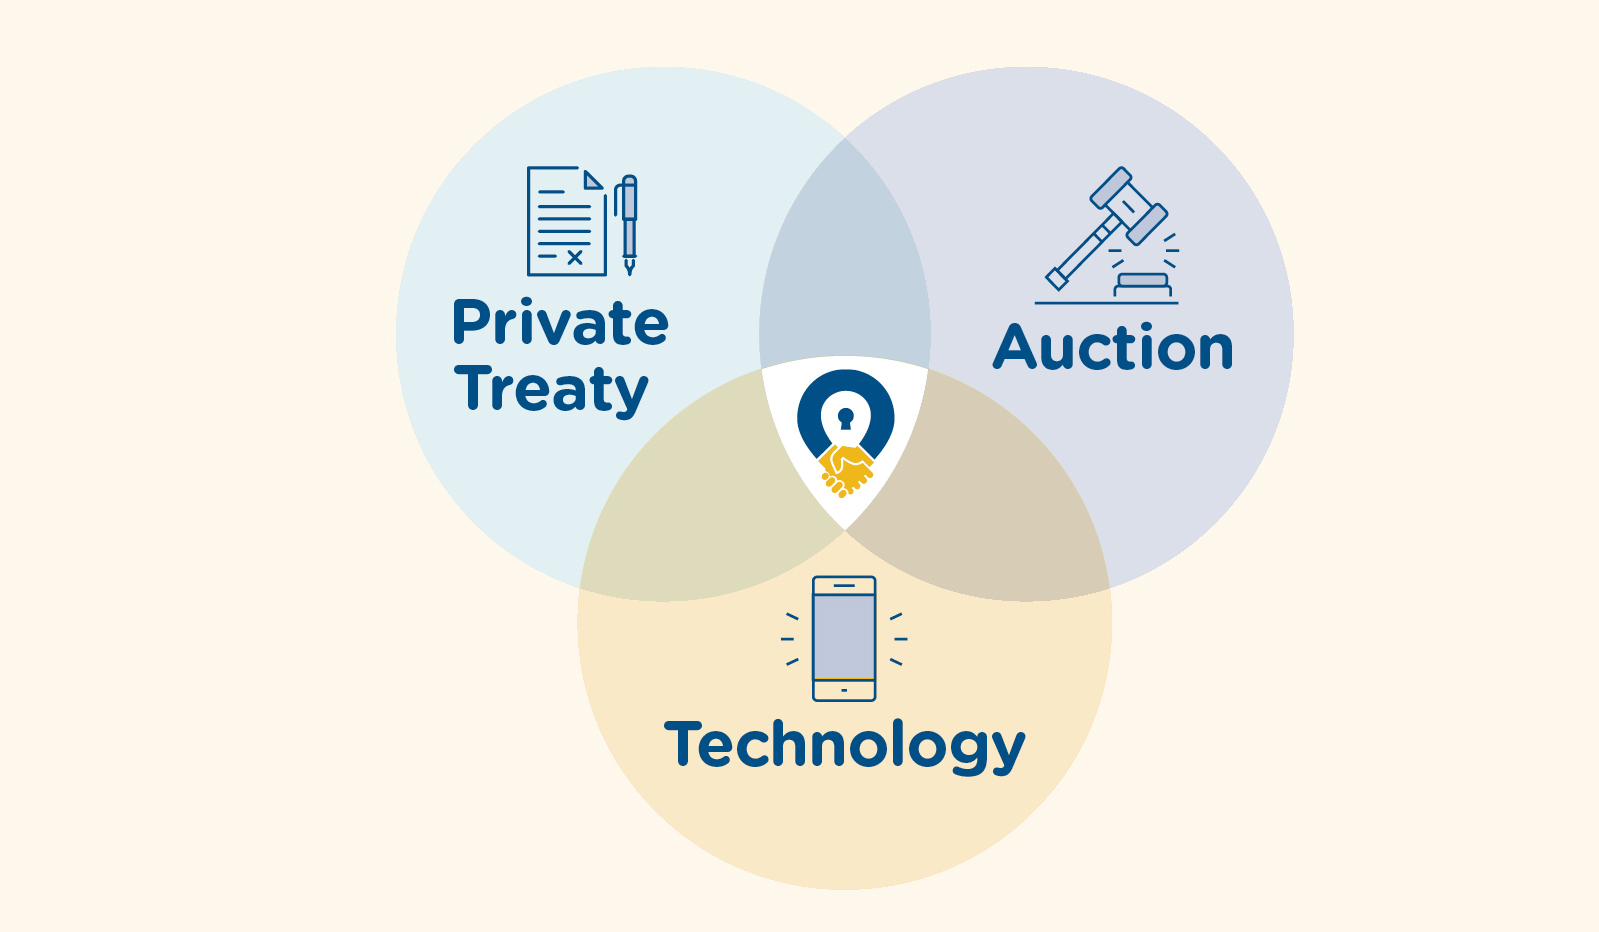 Best Buy Private Auction >> Buy A Home At The Click Of A Button The Future Of Auctions